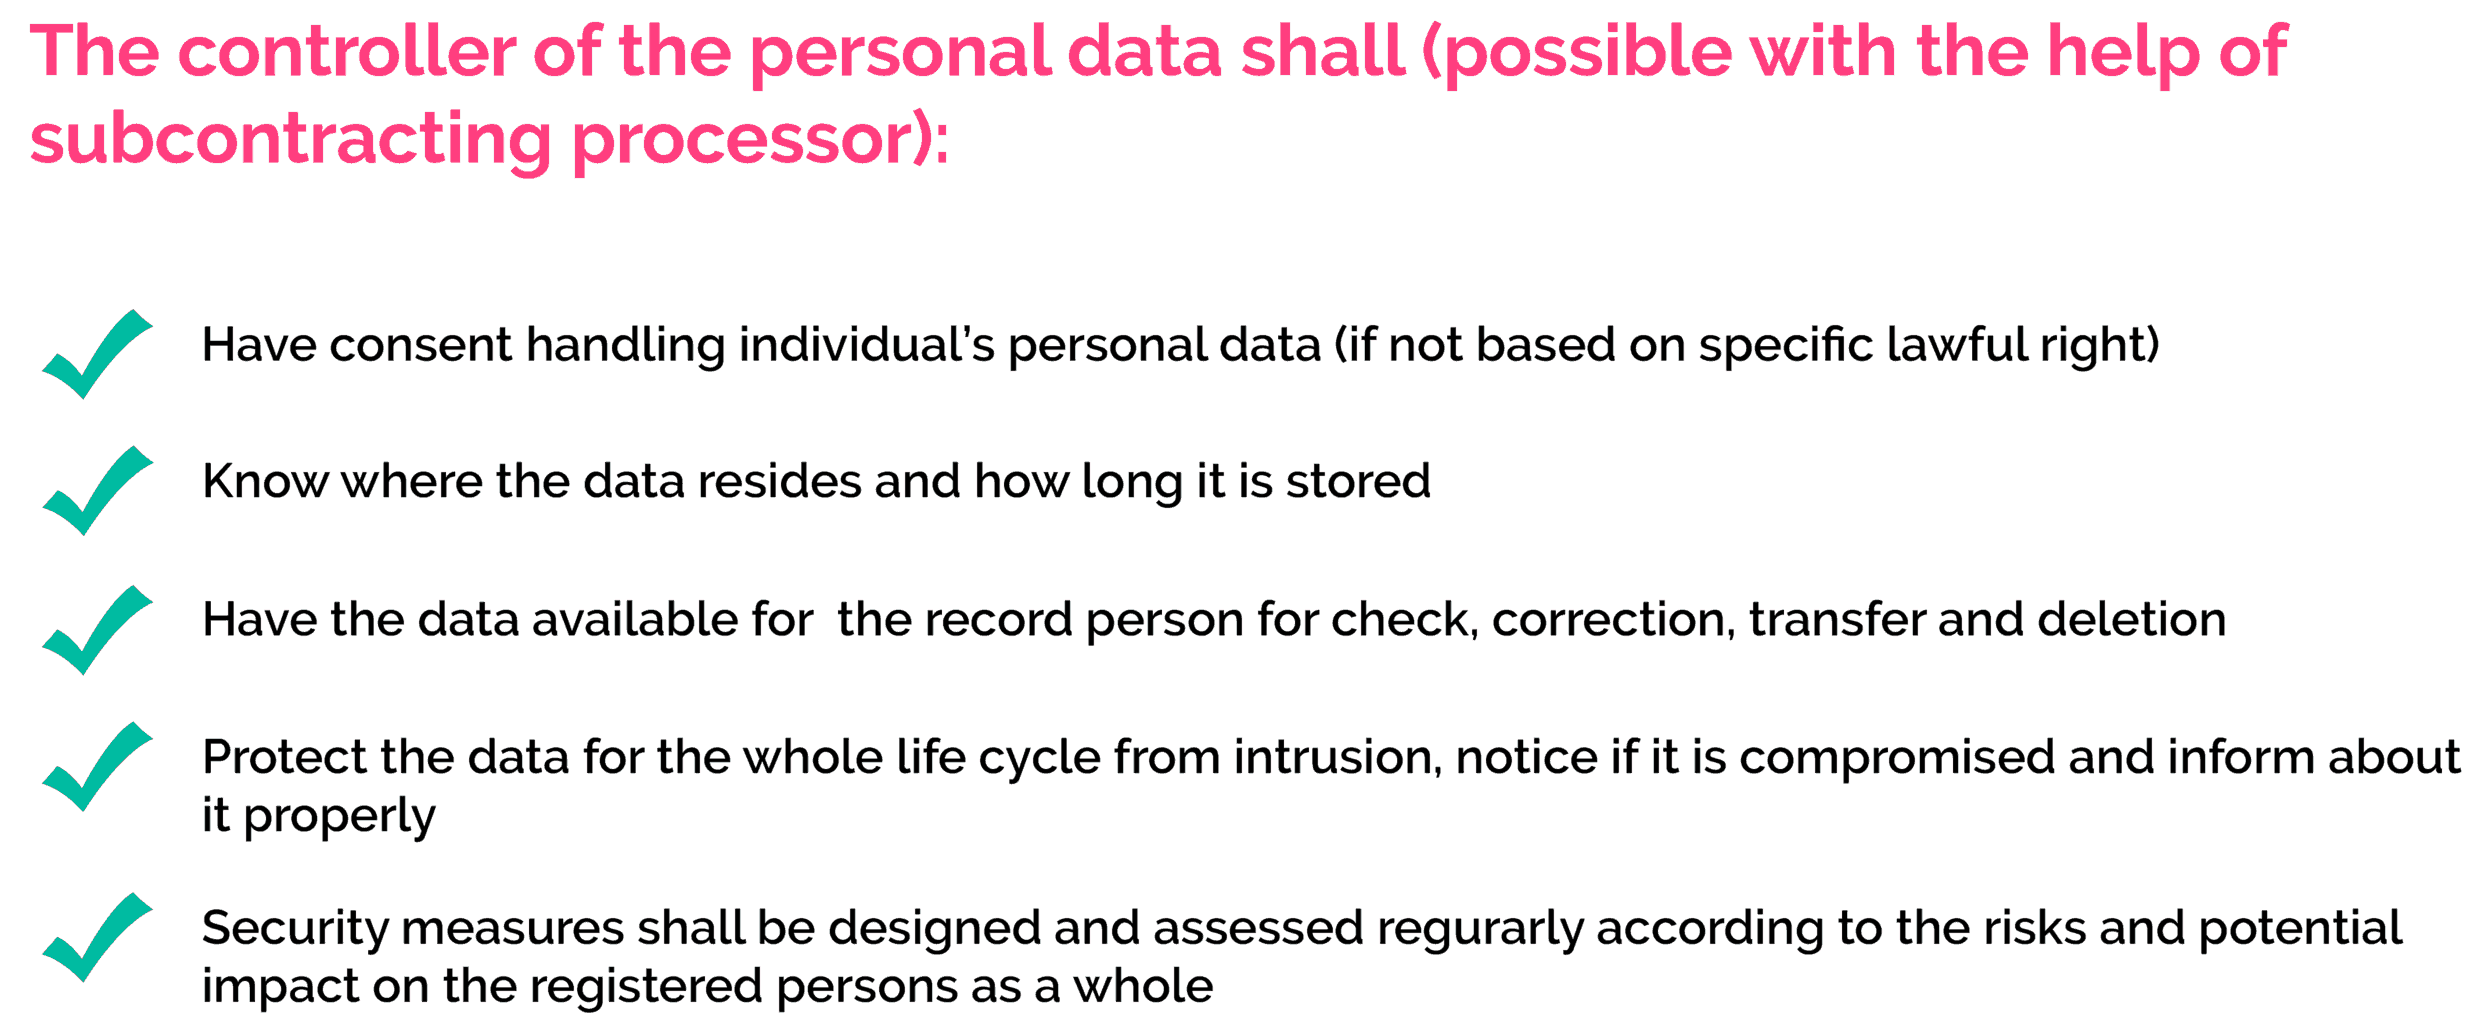 GDPR: requirements for controller of personal data